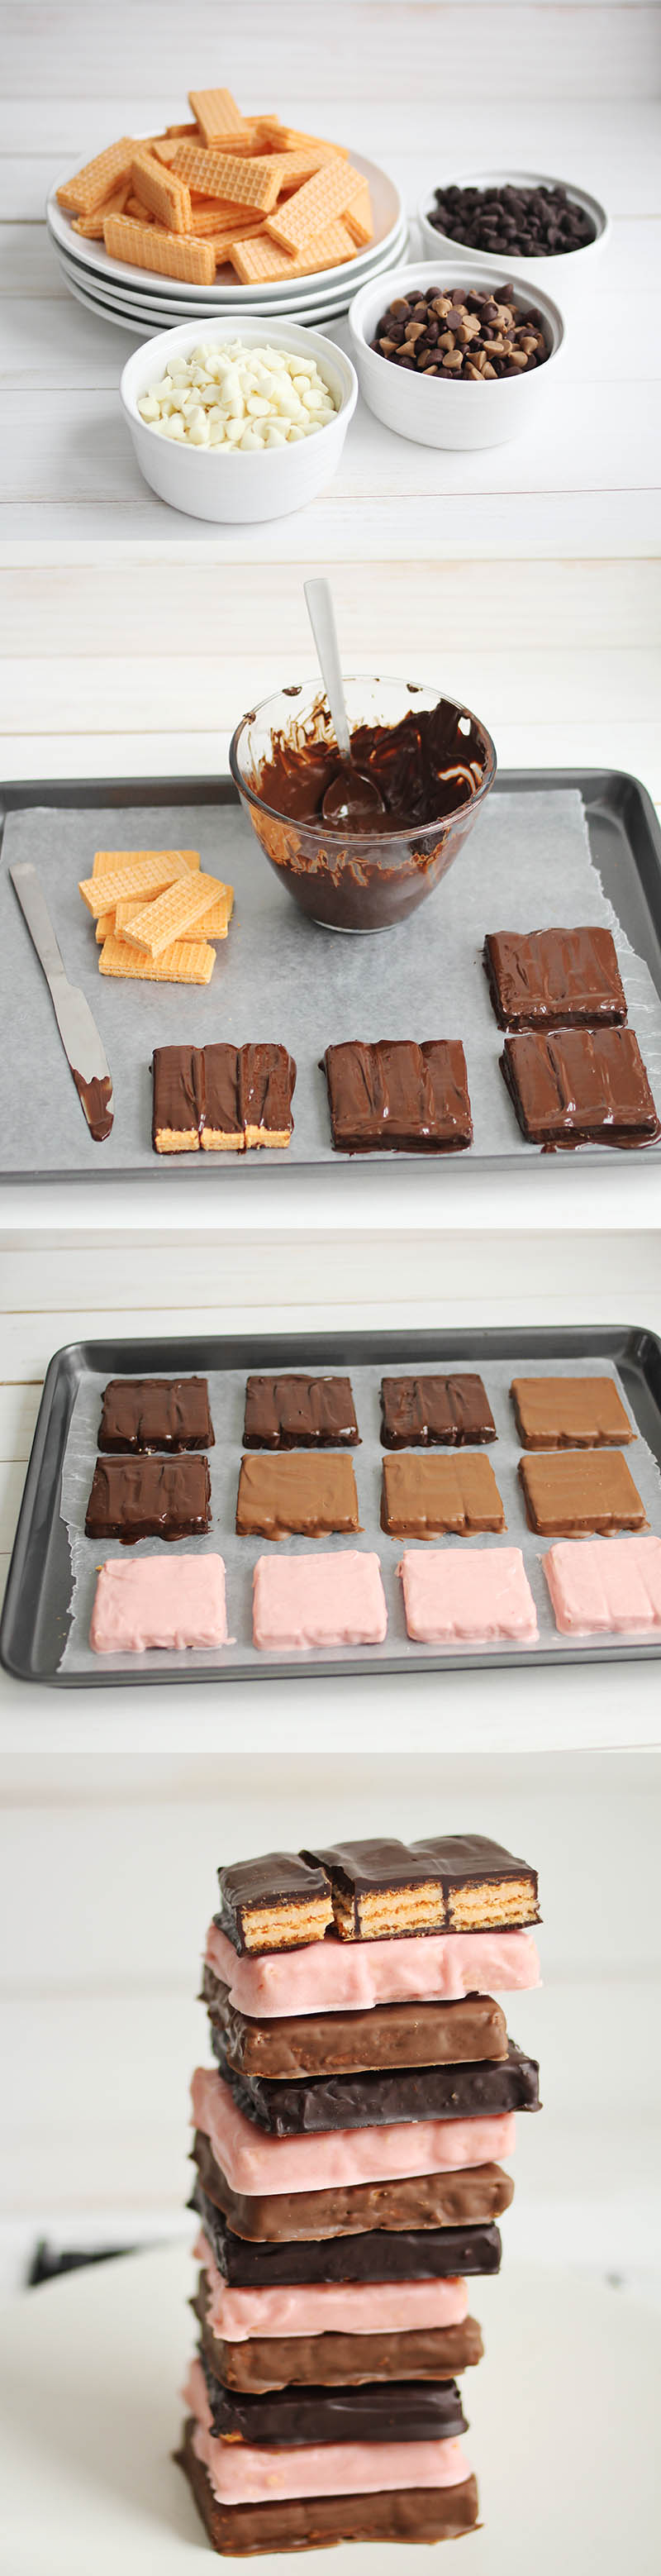 How to make kit kat bars at home!